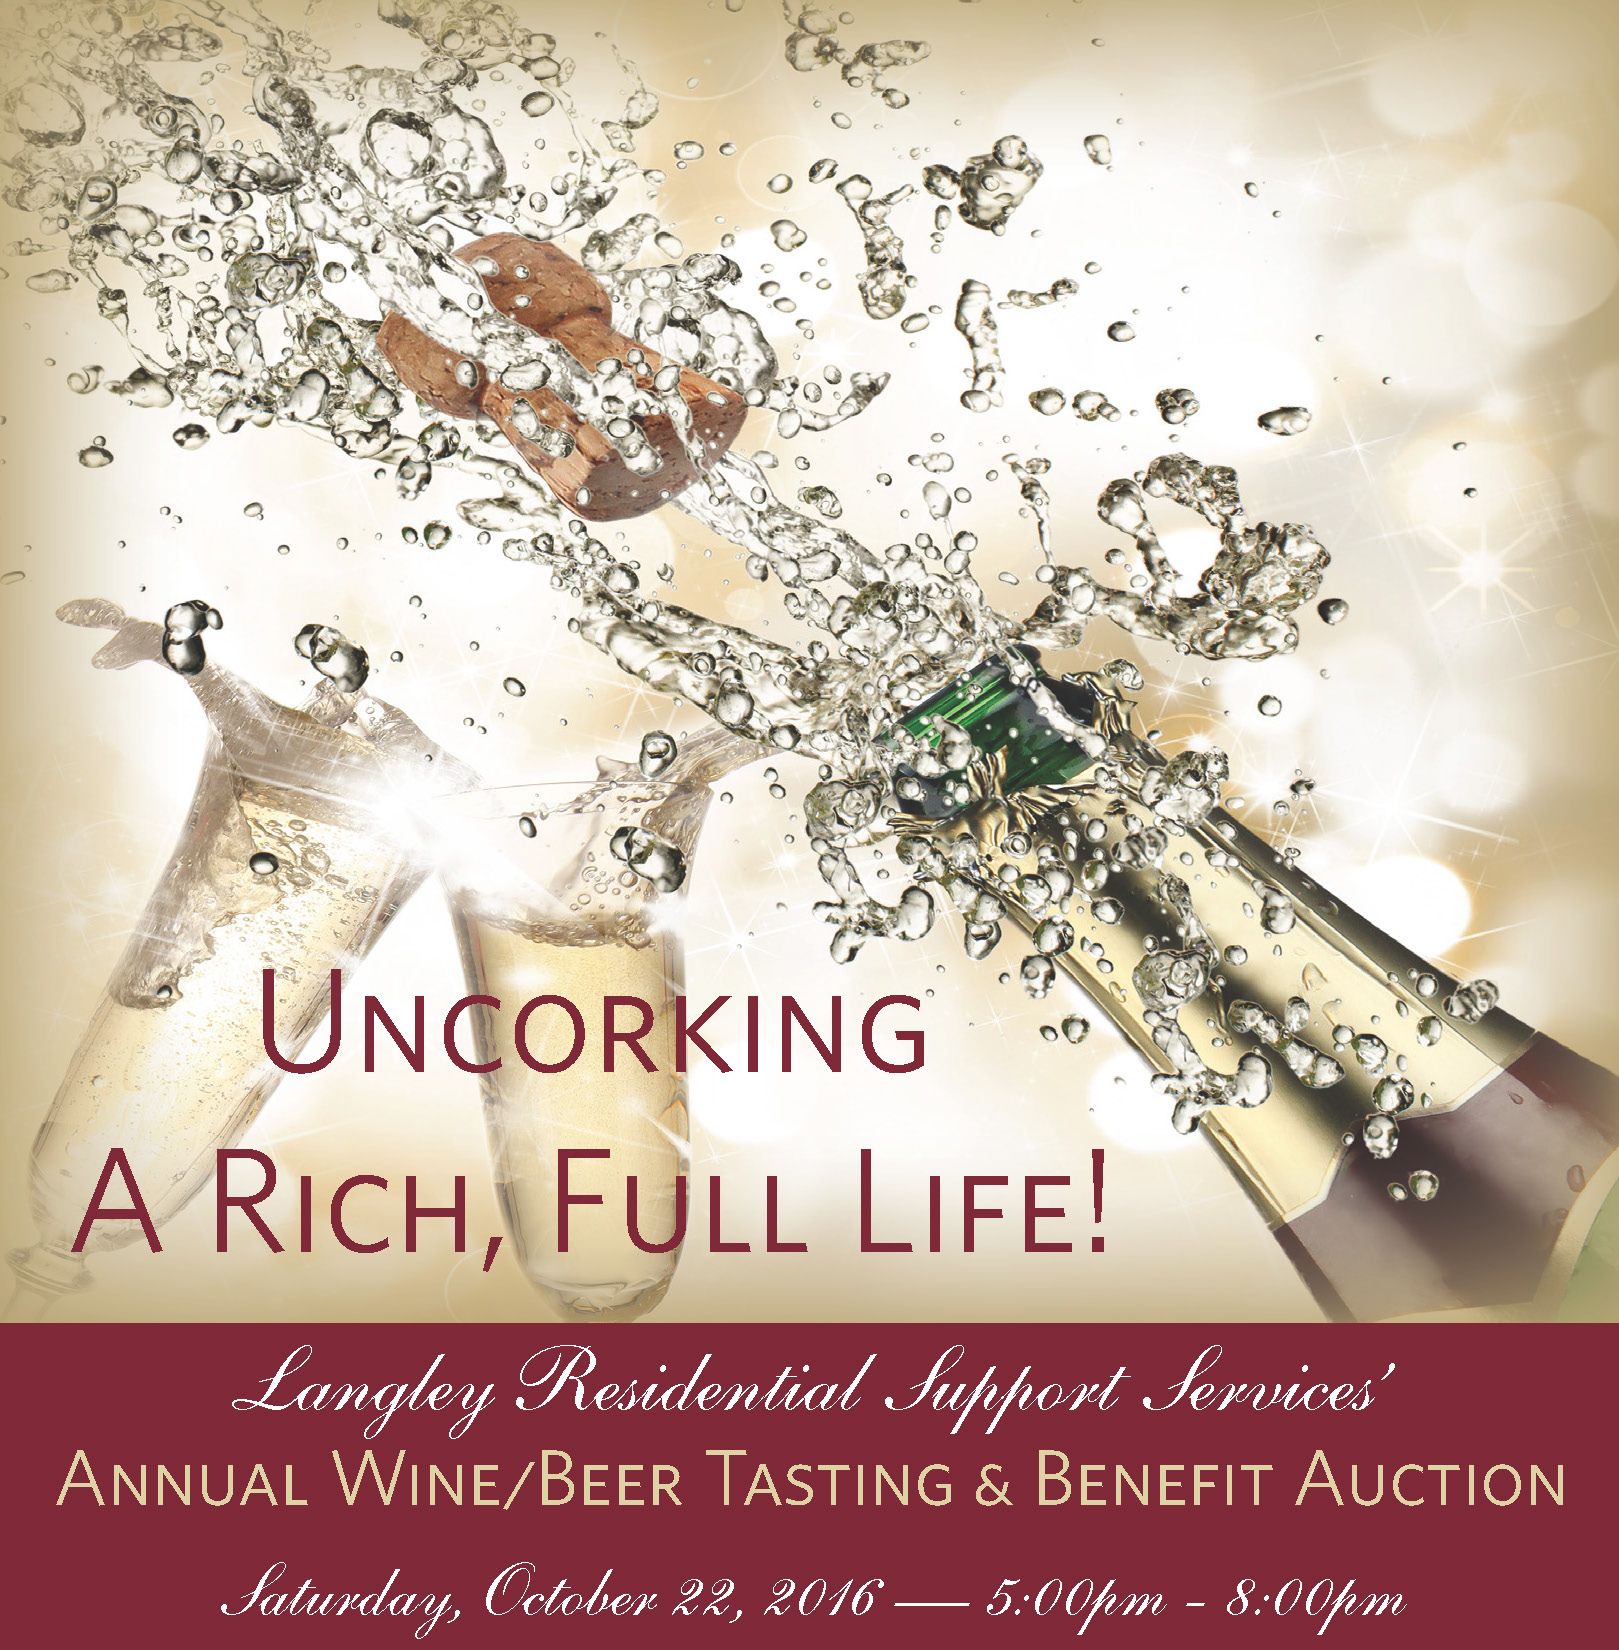 Annual Wine/Beer Tasting & Benefit Auction